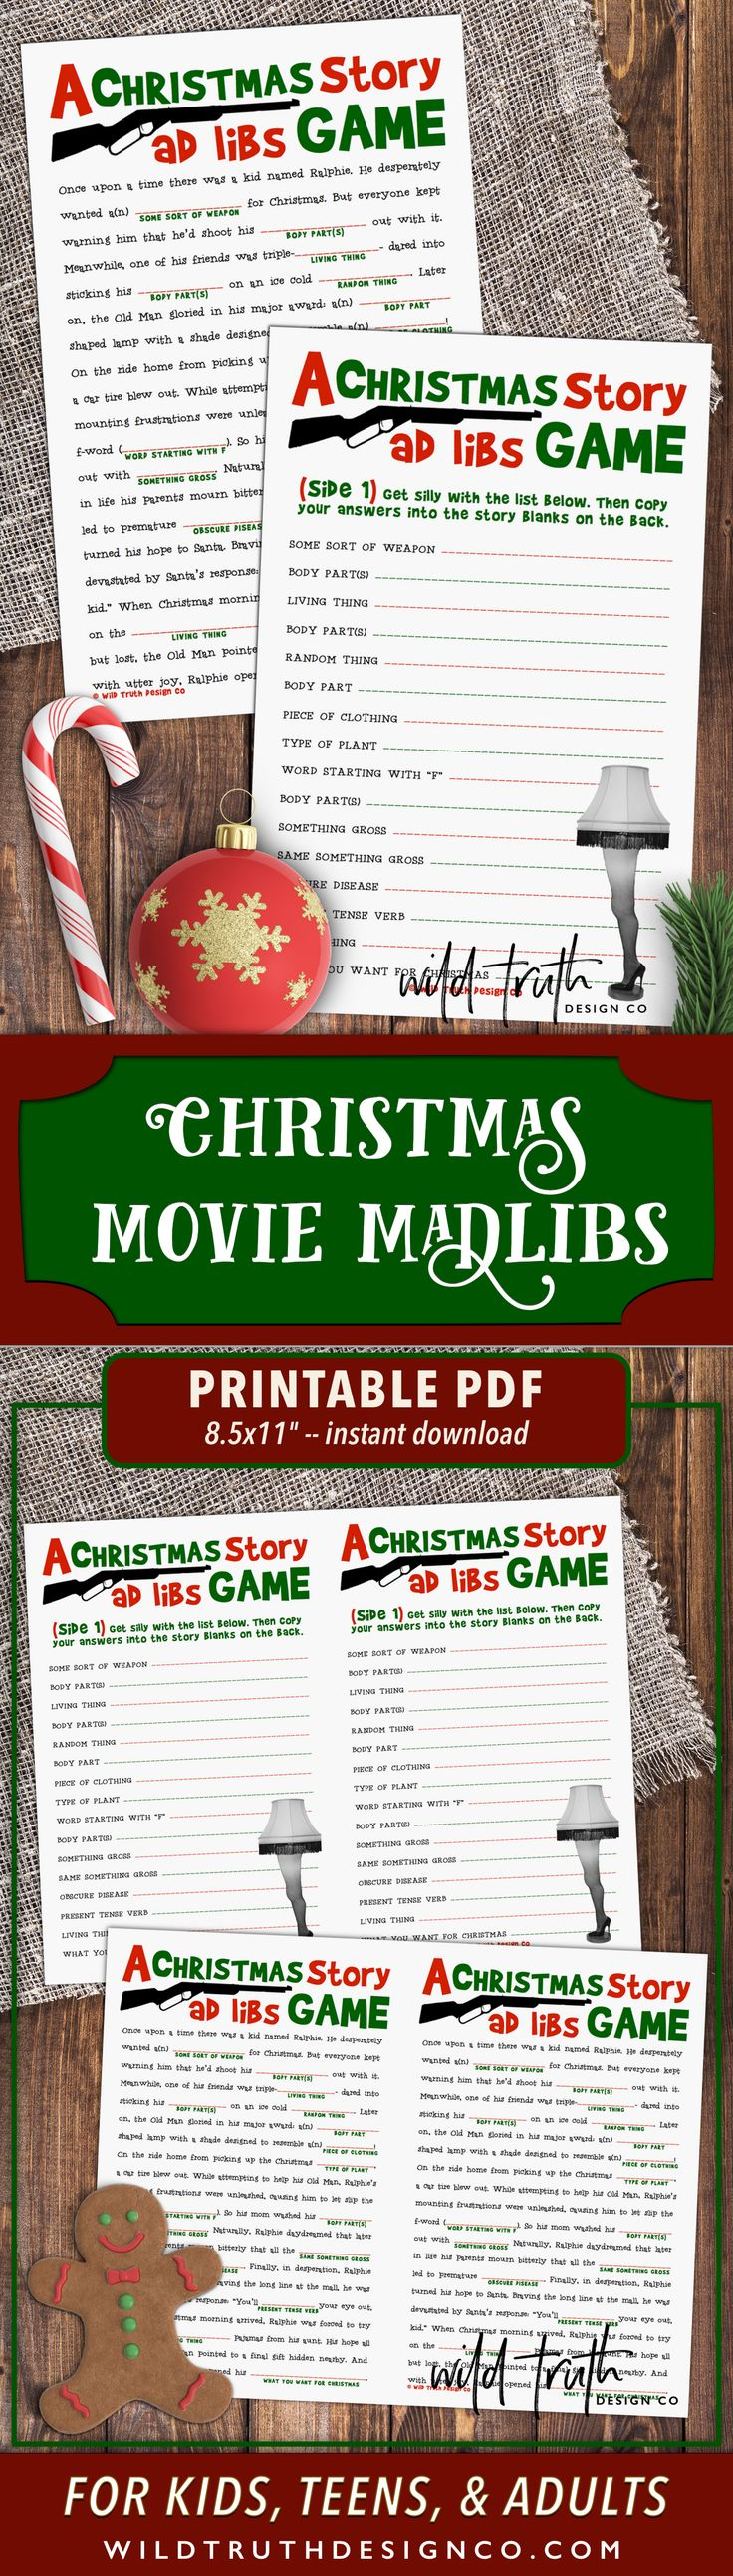 A Christmas Story Movie Mad Lib - Holiday Party Game For Adults (LOL, this is perfect!!)